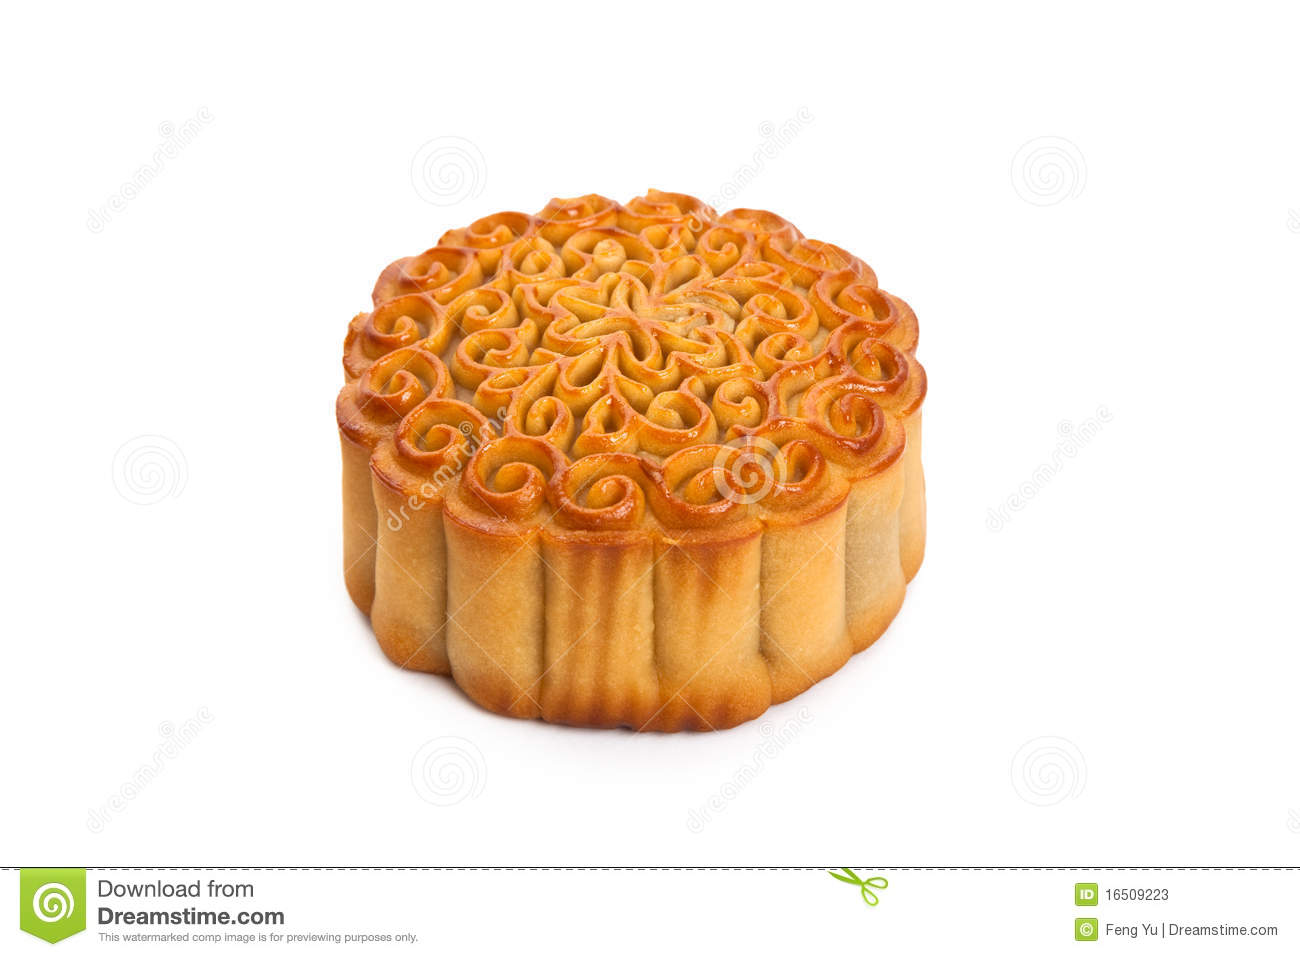 Lemon Moon Cake